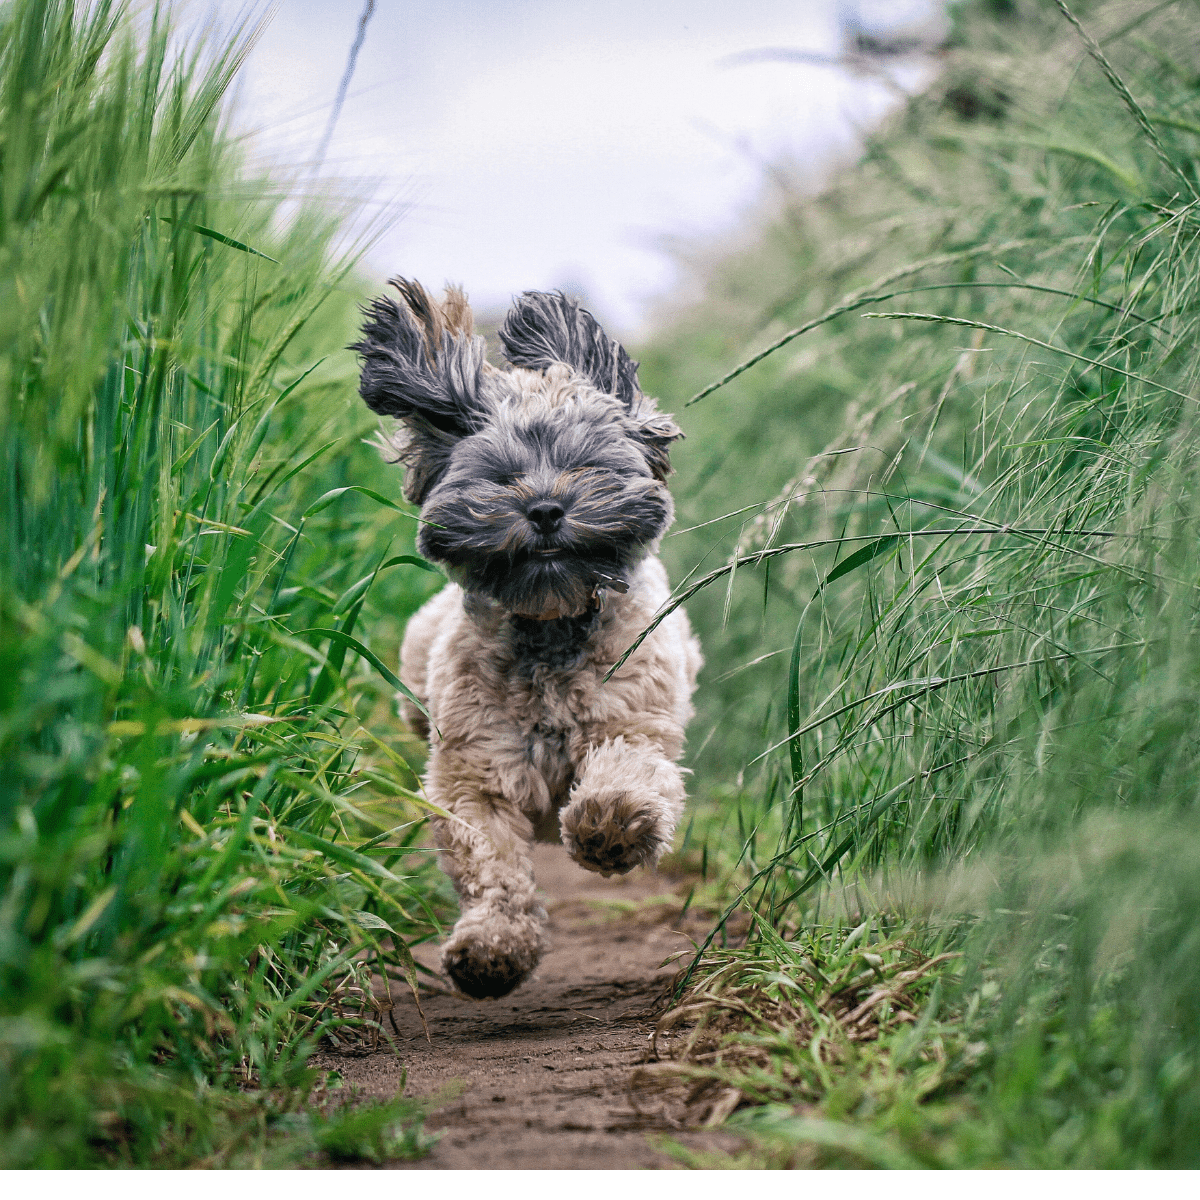 Excited dog running through grass